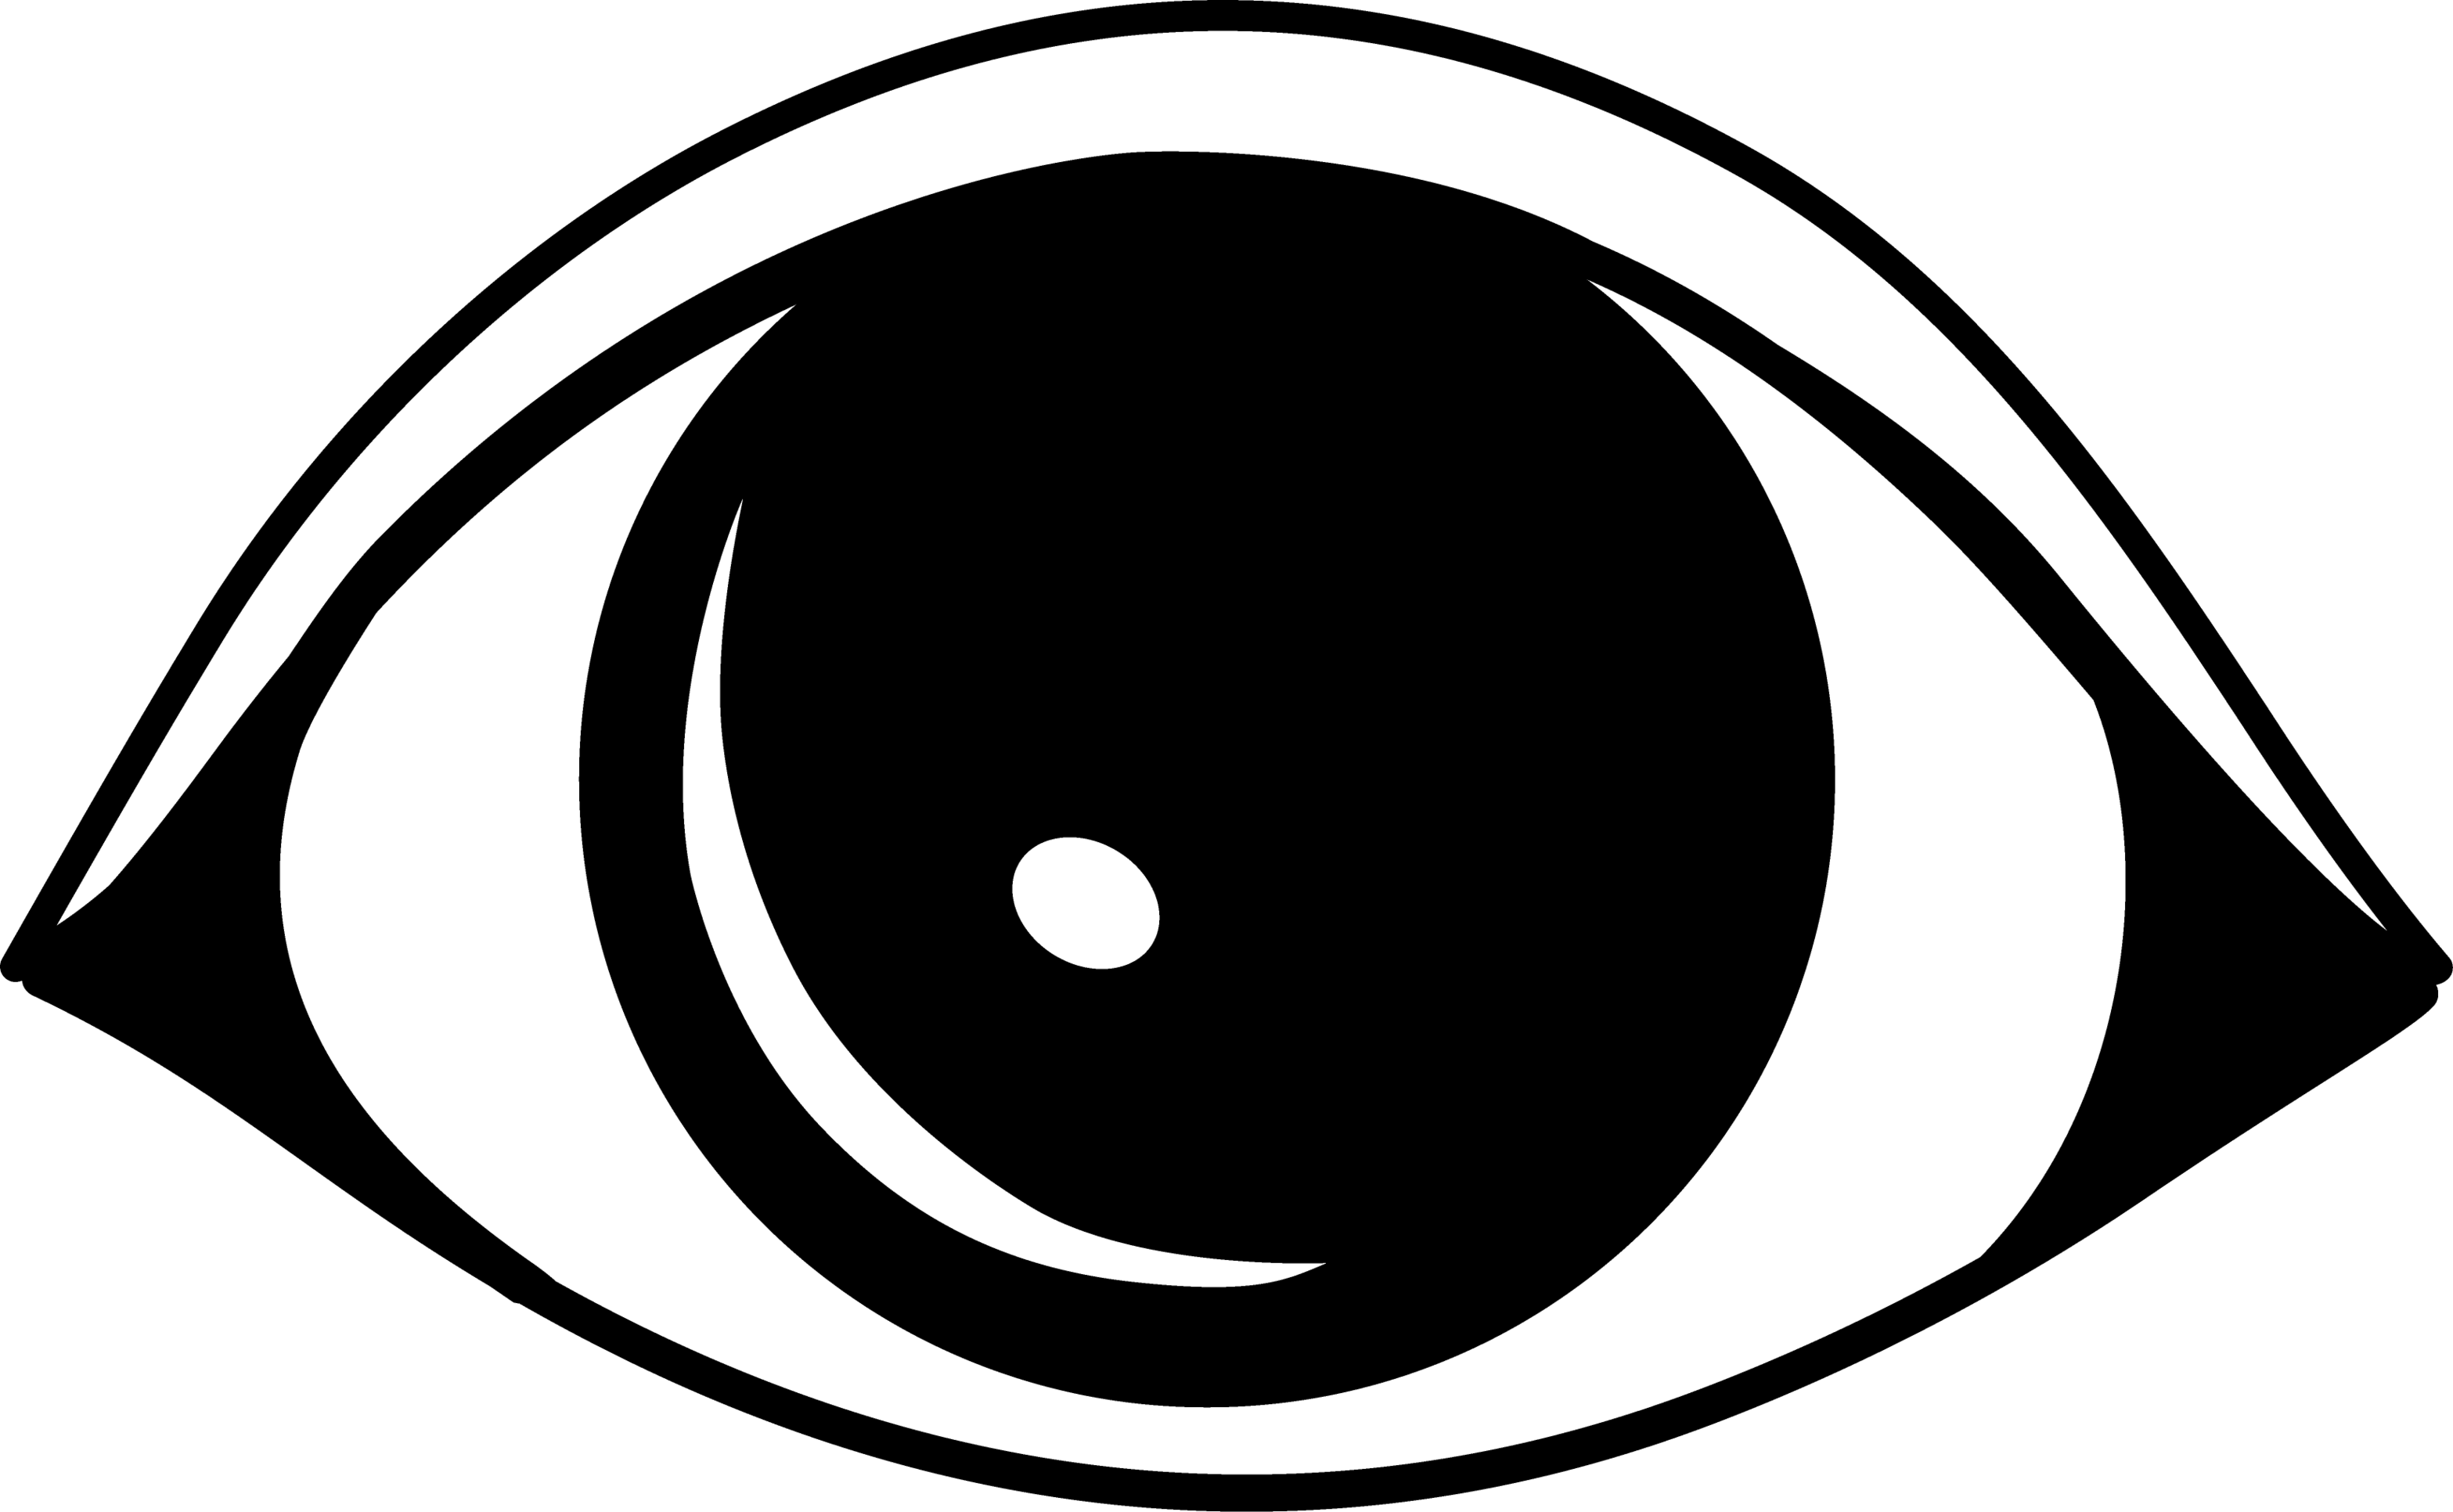 Eyes Black And White - ClipArt Best